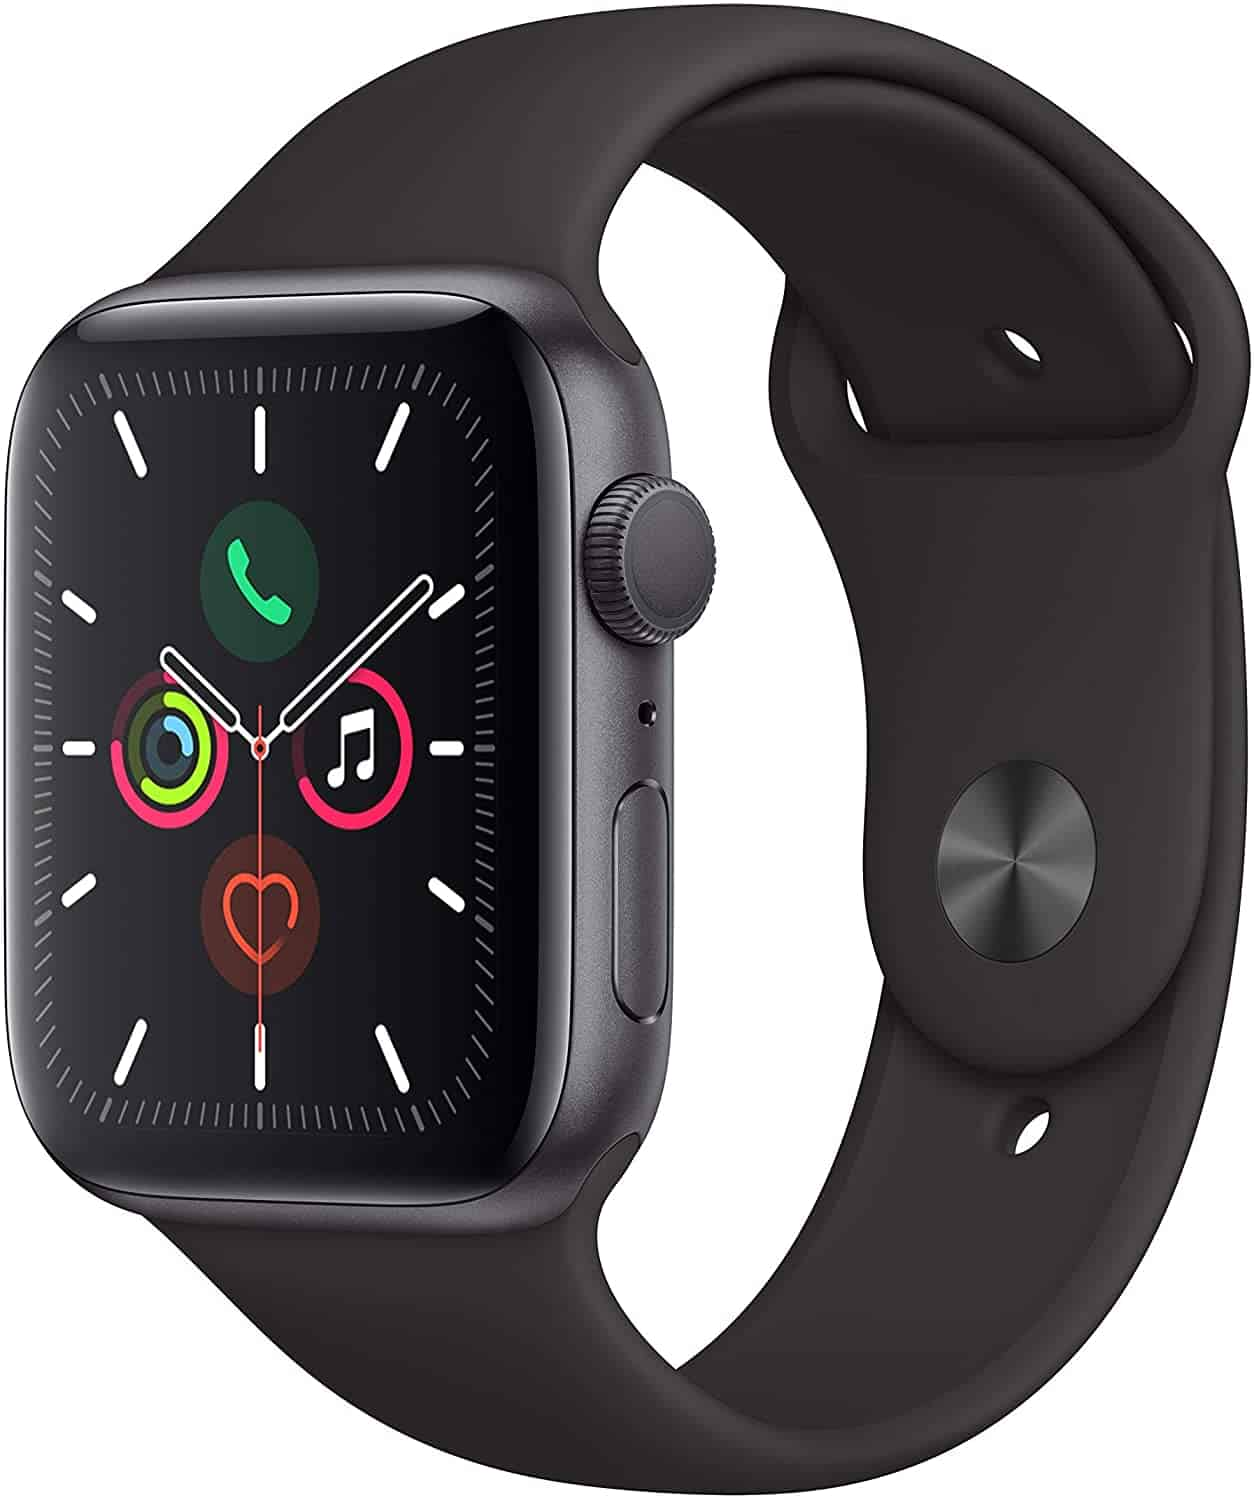 Apple Watch Series 5- gifts for teen boys